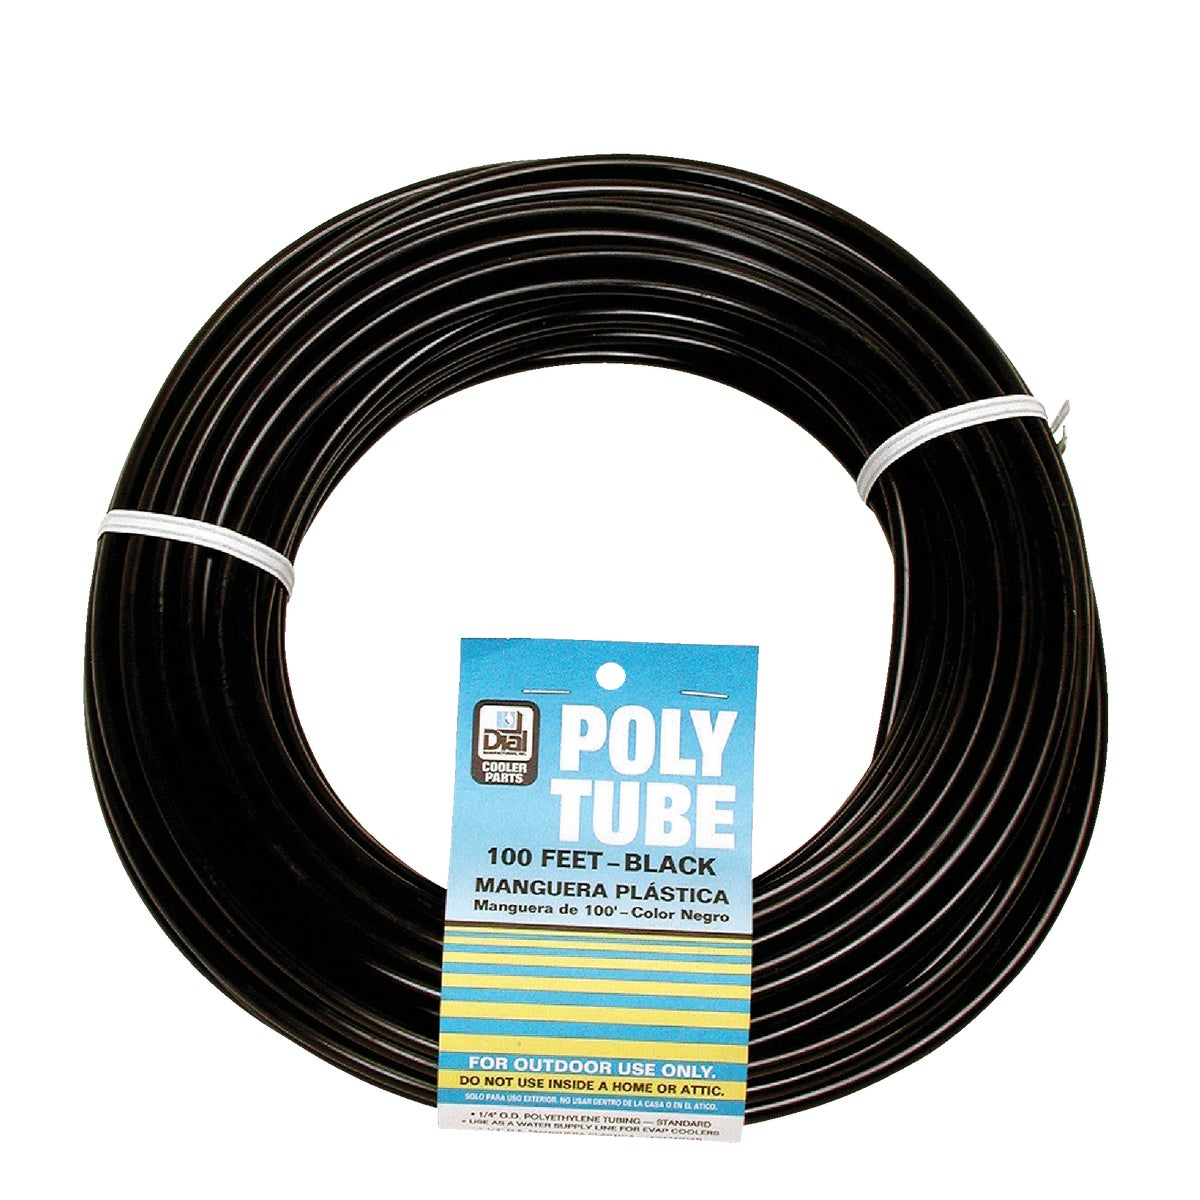 "1/4""X1000' BLK POLY TUBE - 4325 by Dial Manufacturing"